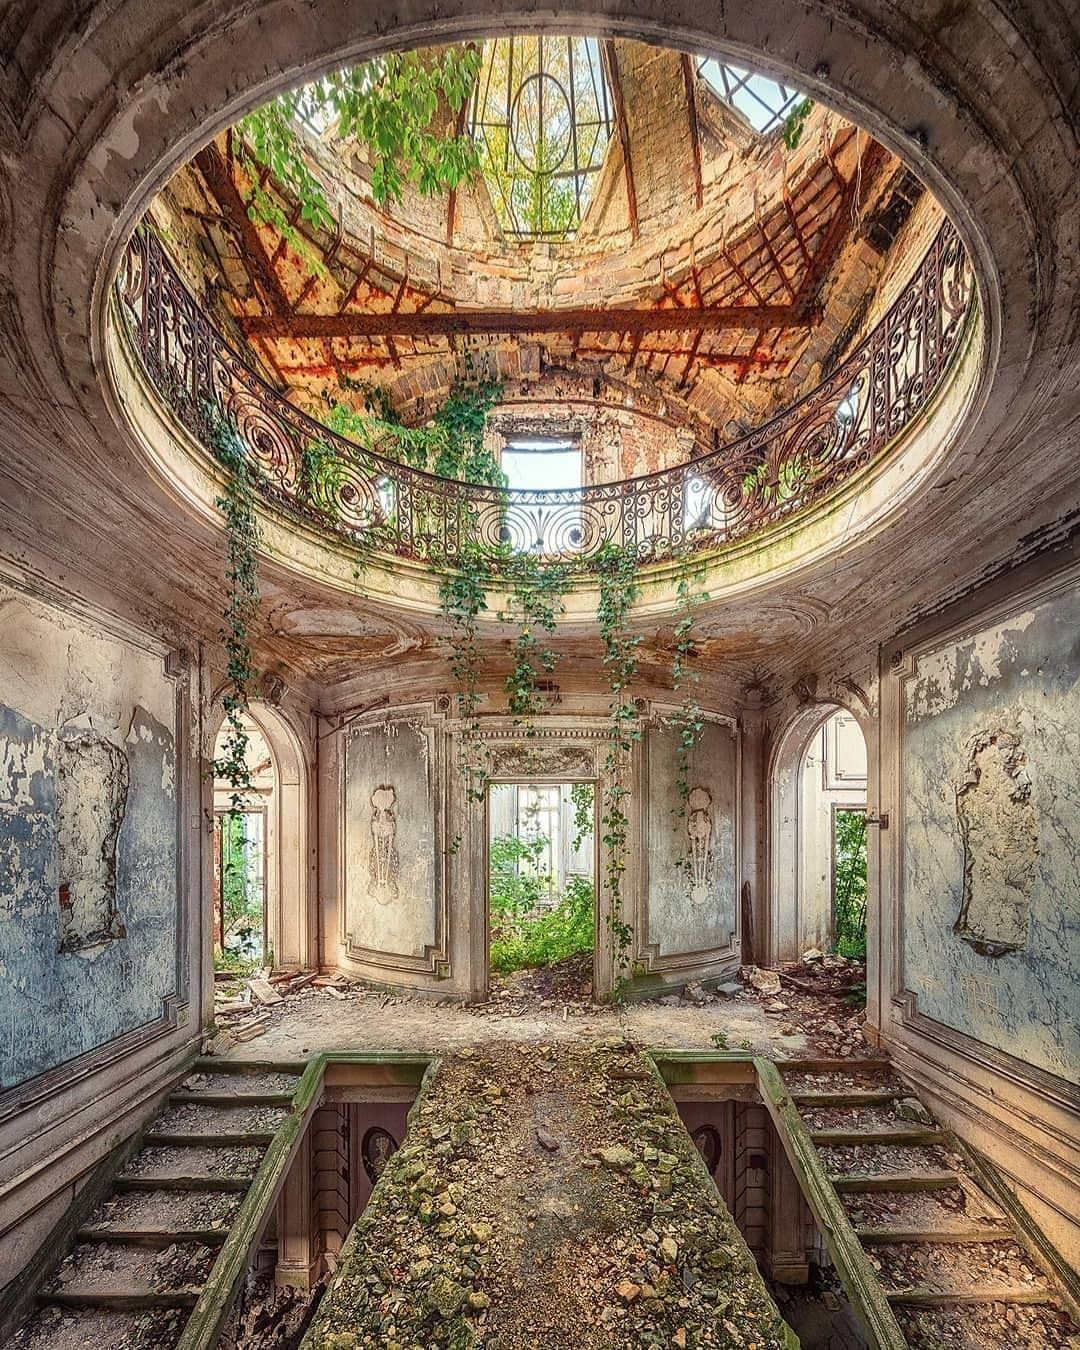 "Deserted Places On Instagram: ""Abandoned Villa In Italy"